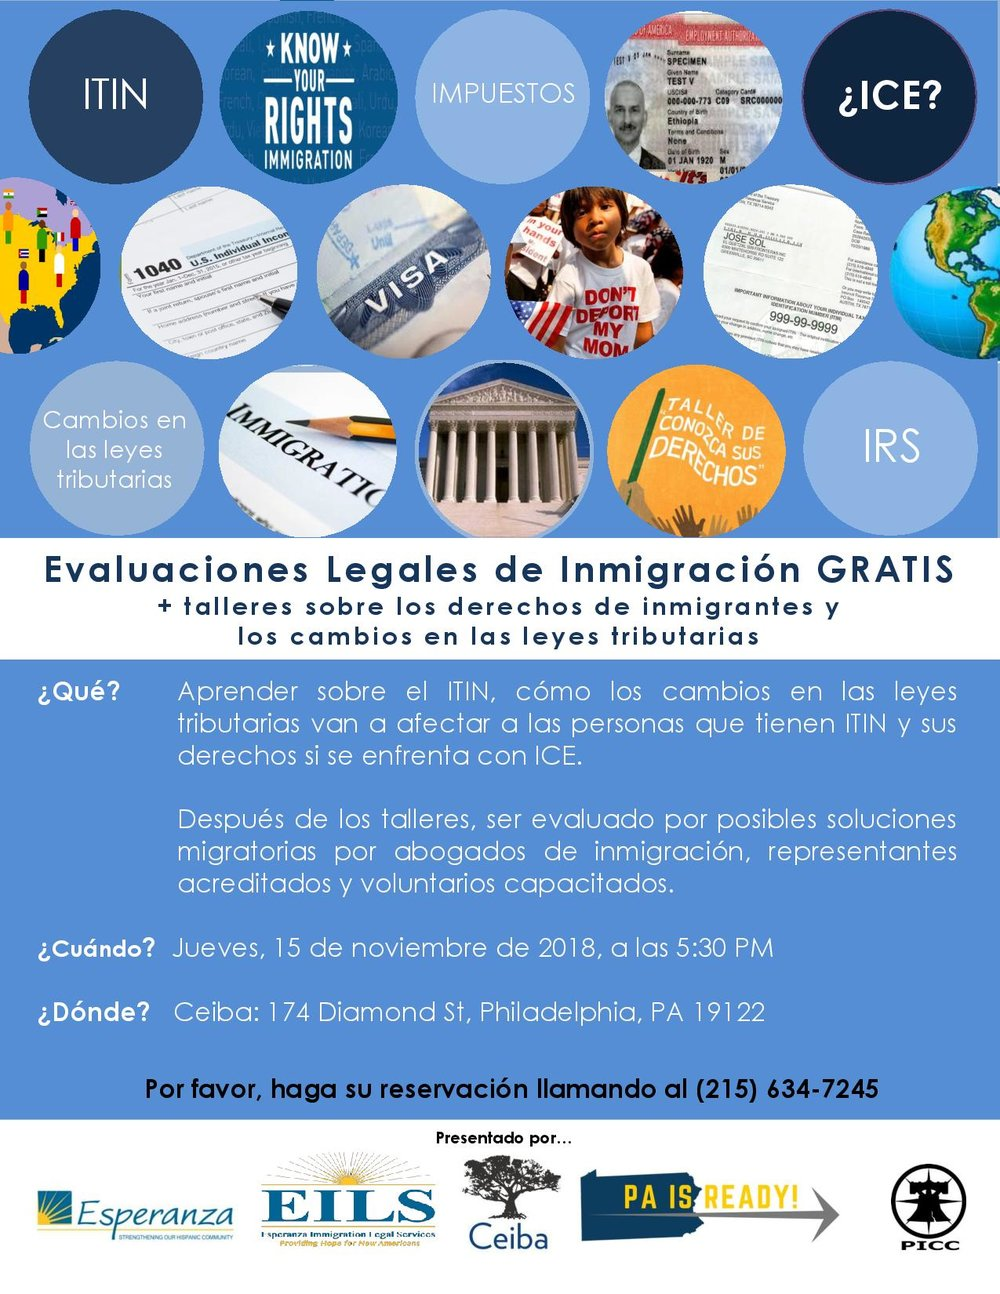 ITIN KYR Workshop Flyer 11.15.2018 Spanish-page-001.jpg